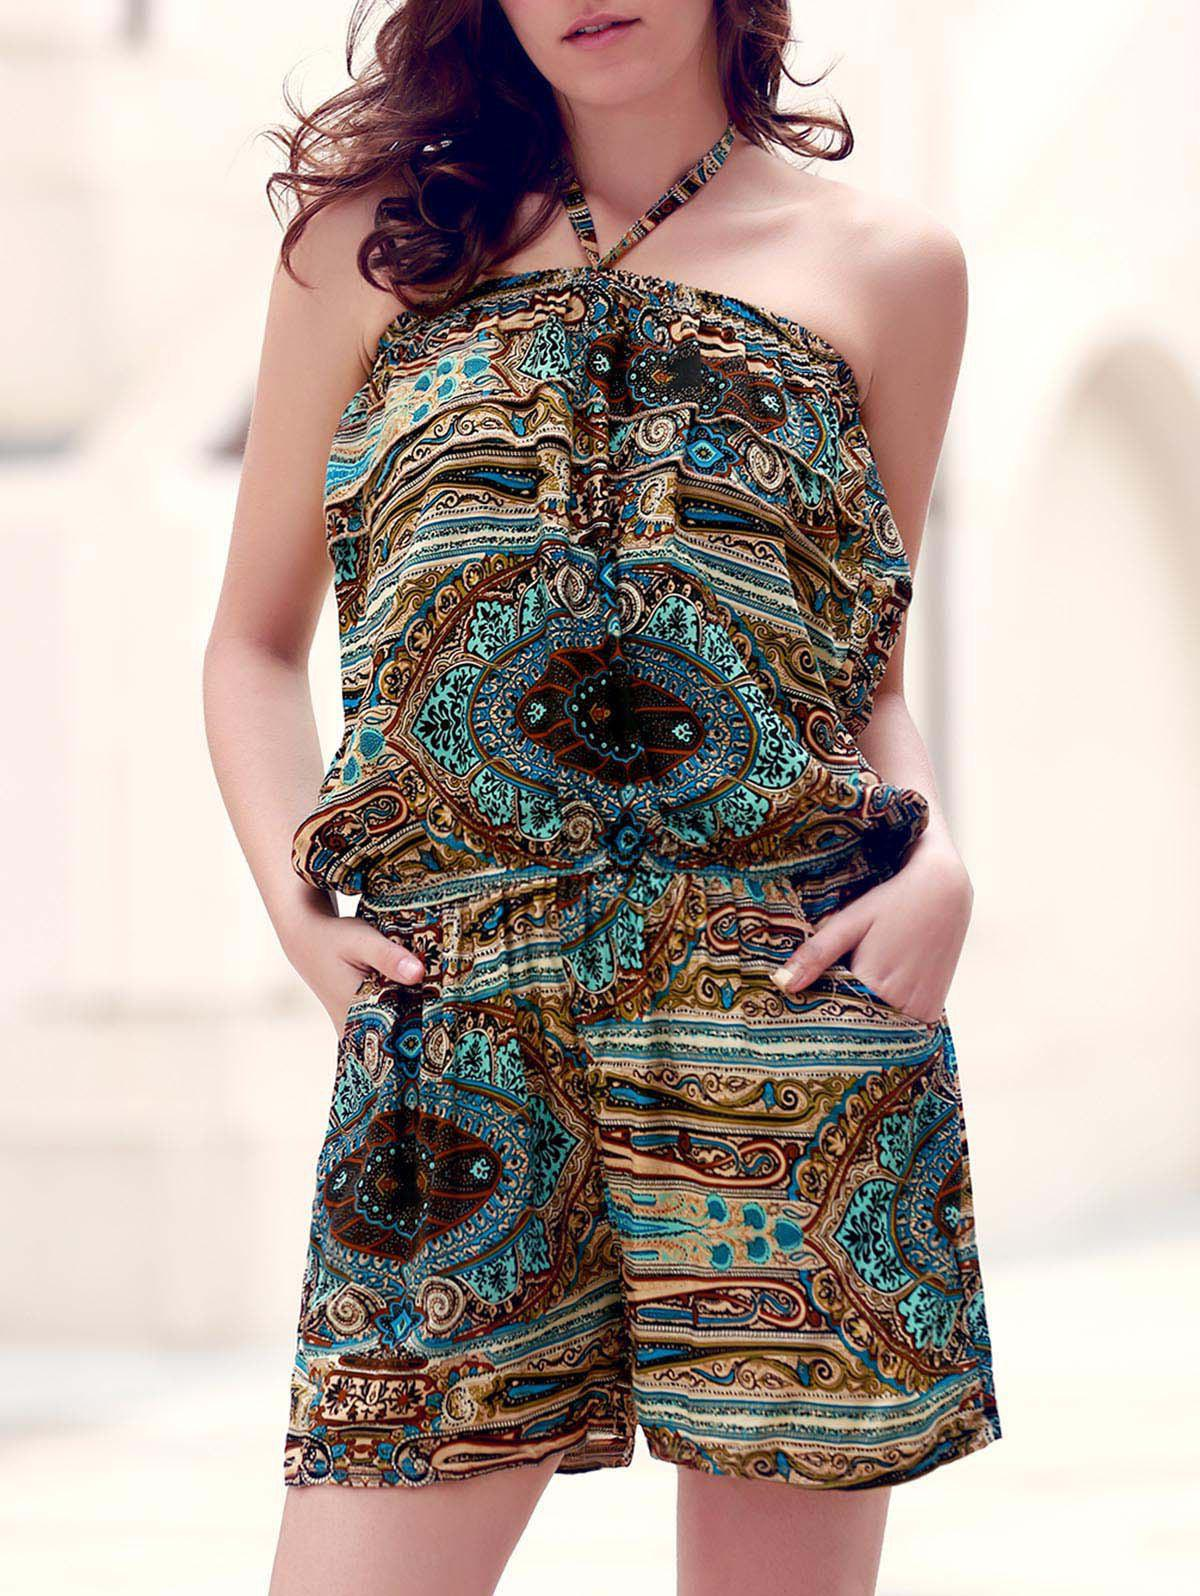 Retro Style Halter Ethnic Print Romper For Women - COLORMIX ONE SIZE(FIT SIZE XS TO M)